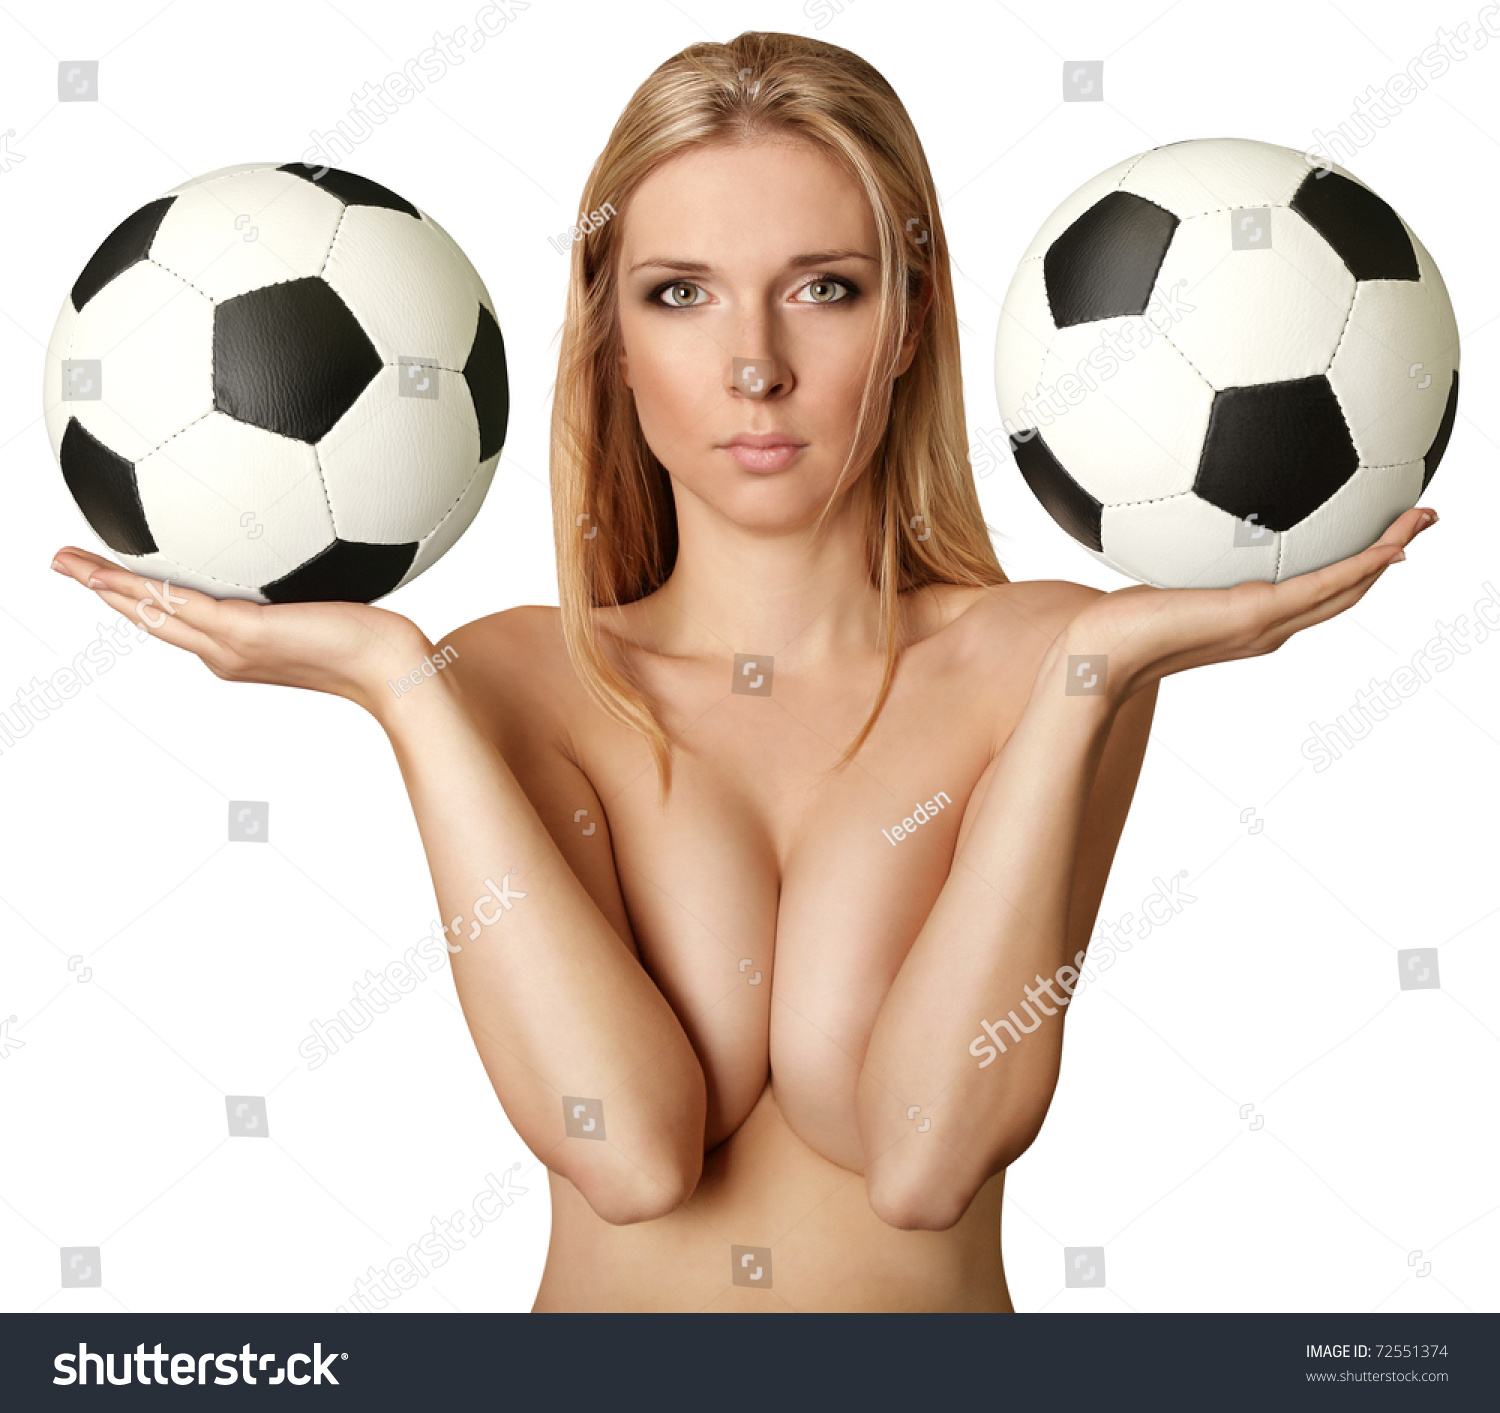 naked women with soccer bals